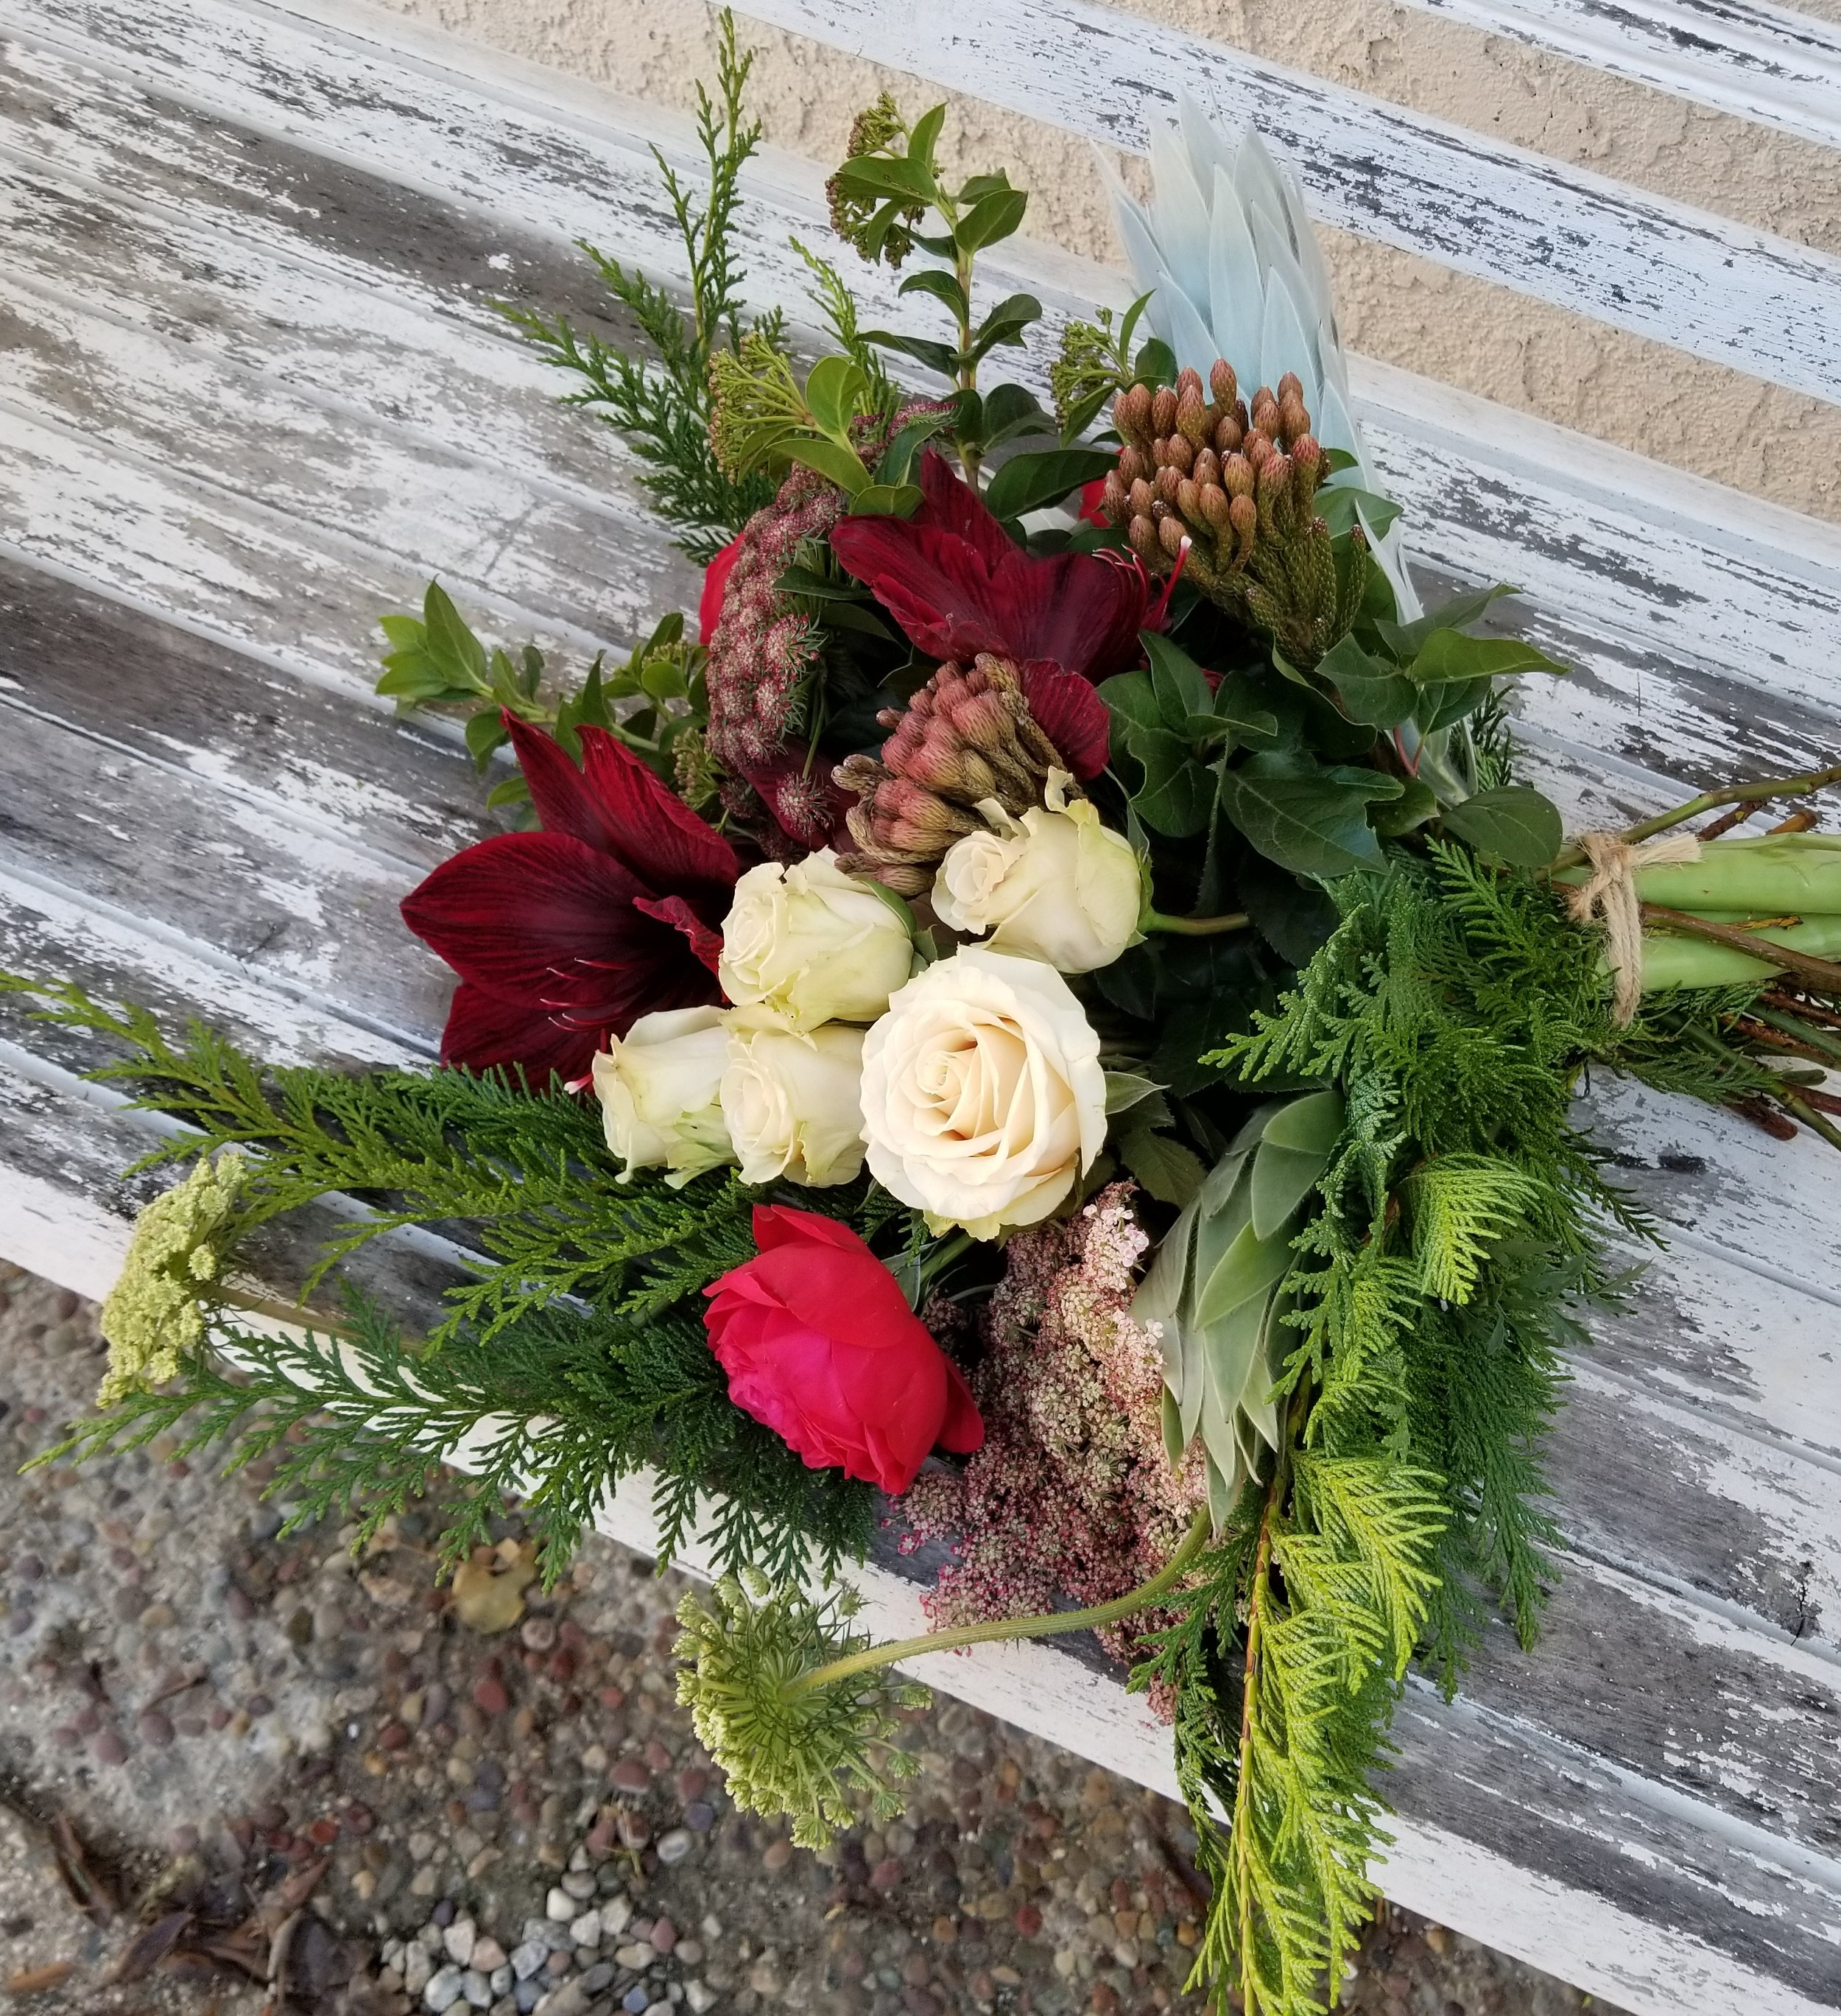 Wild & styled bouquet of roses, amaryllis, berzillia, chocolate lace, and lush greenery.